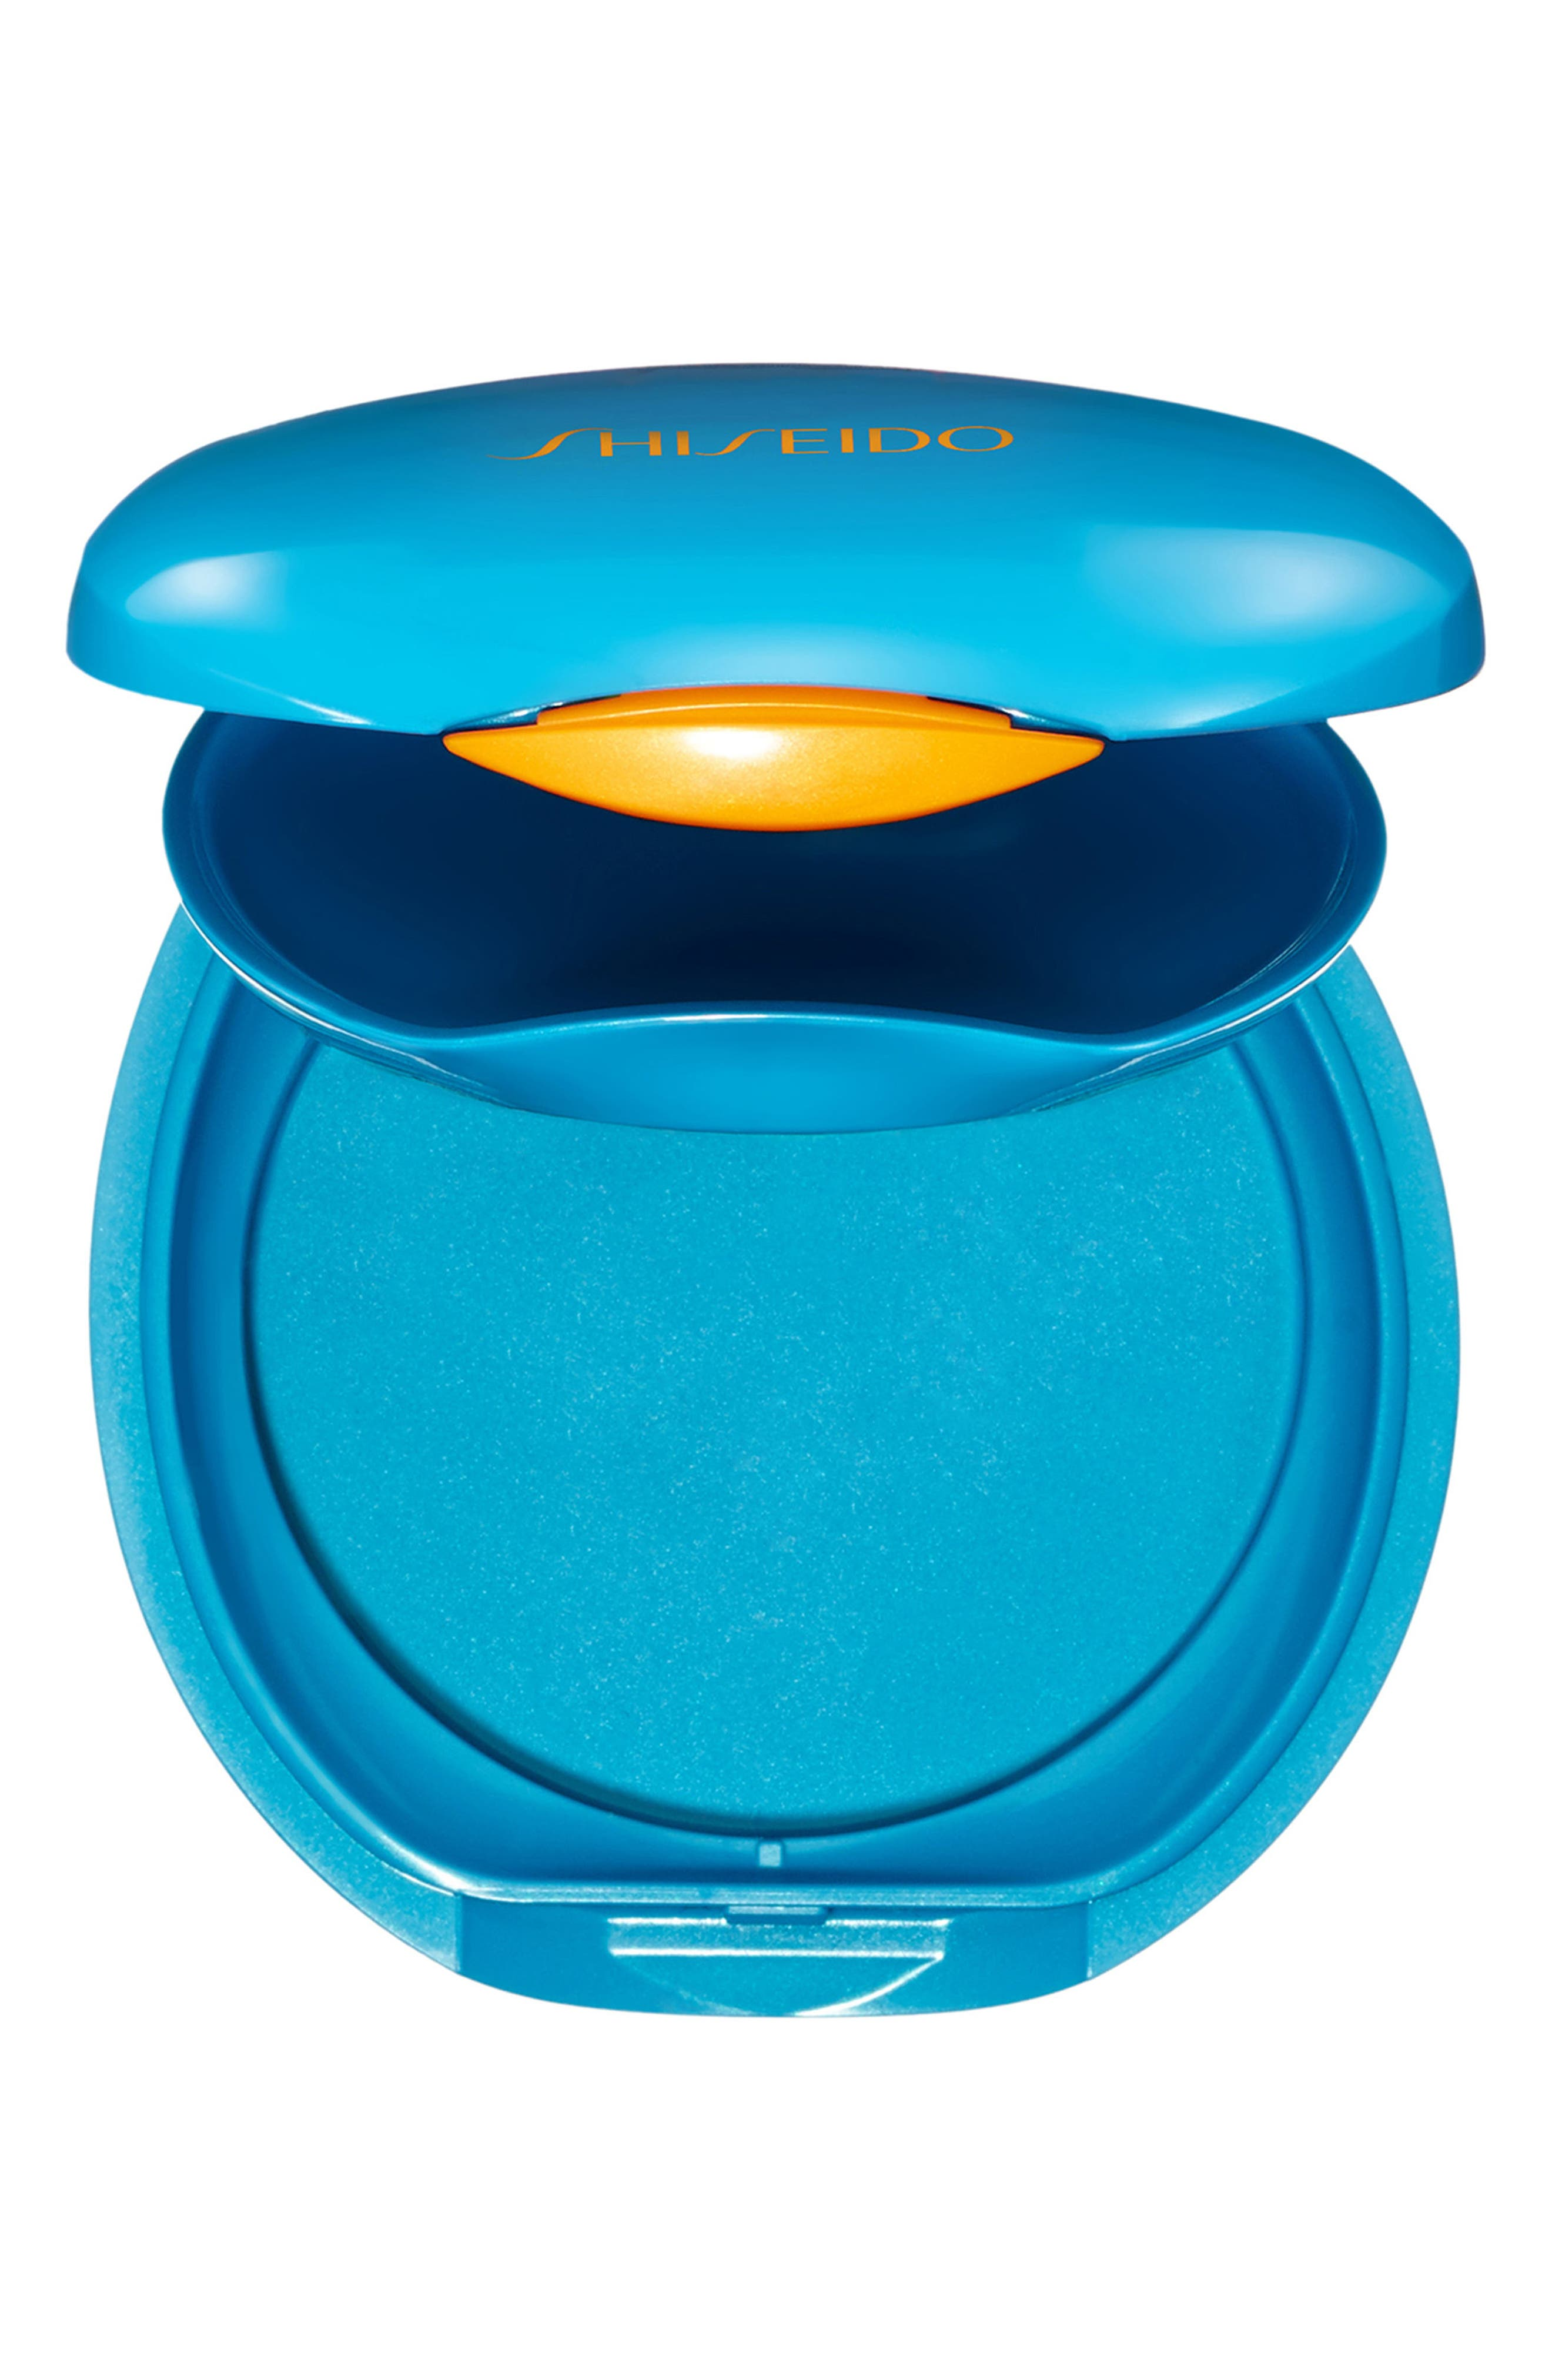 UV Protective Compact Foundation Compact Case,                             Alternate thumbnail 2, color,                             NONE